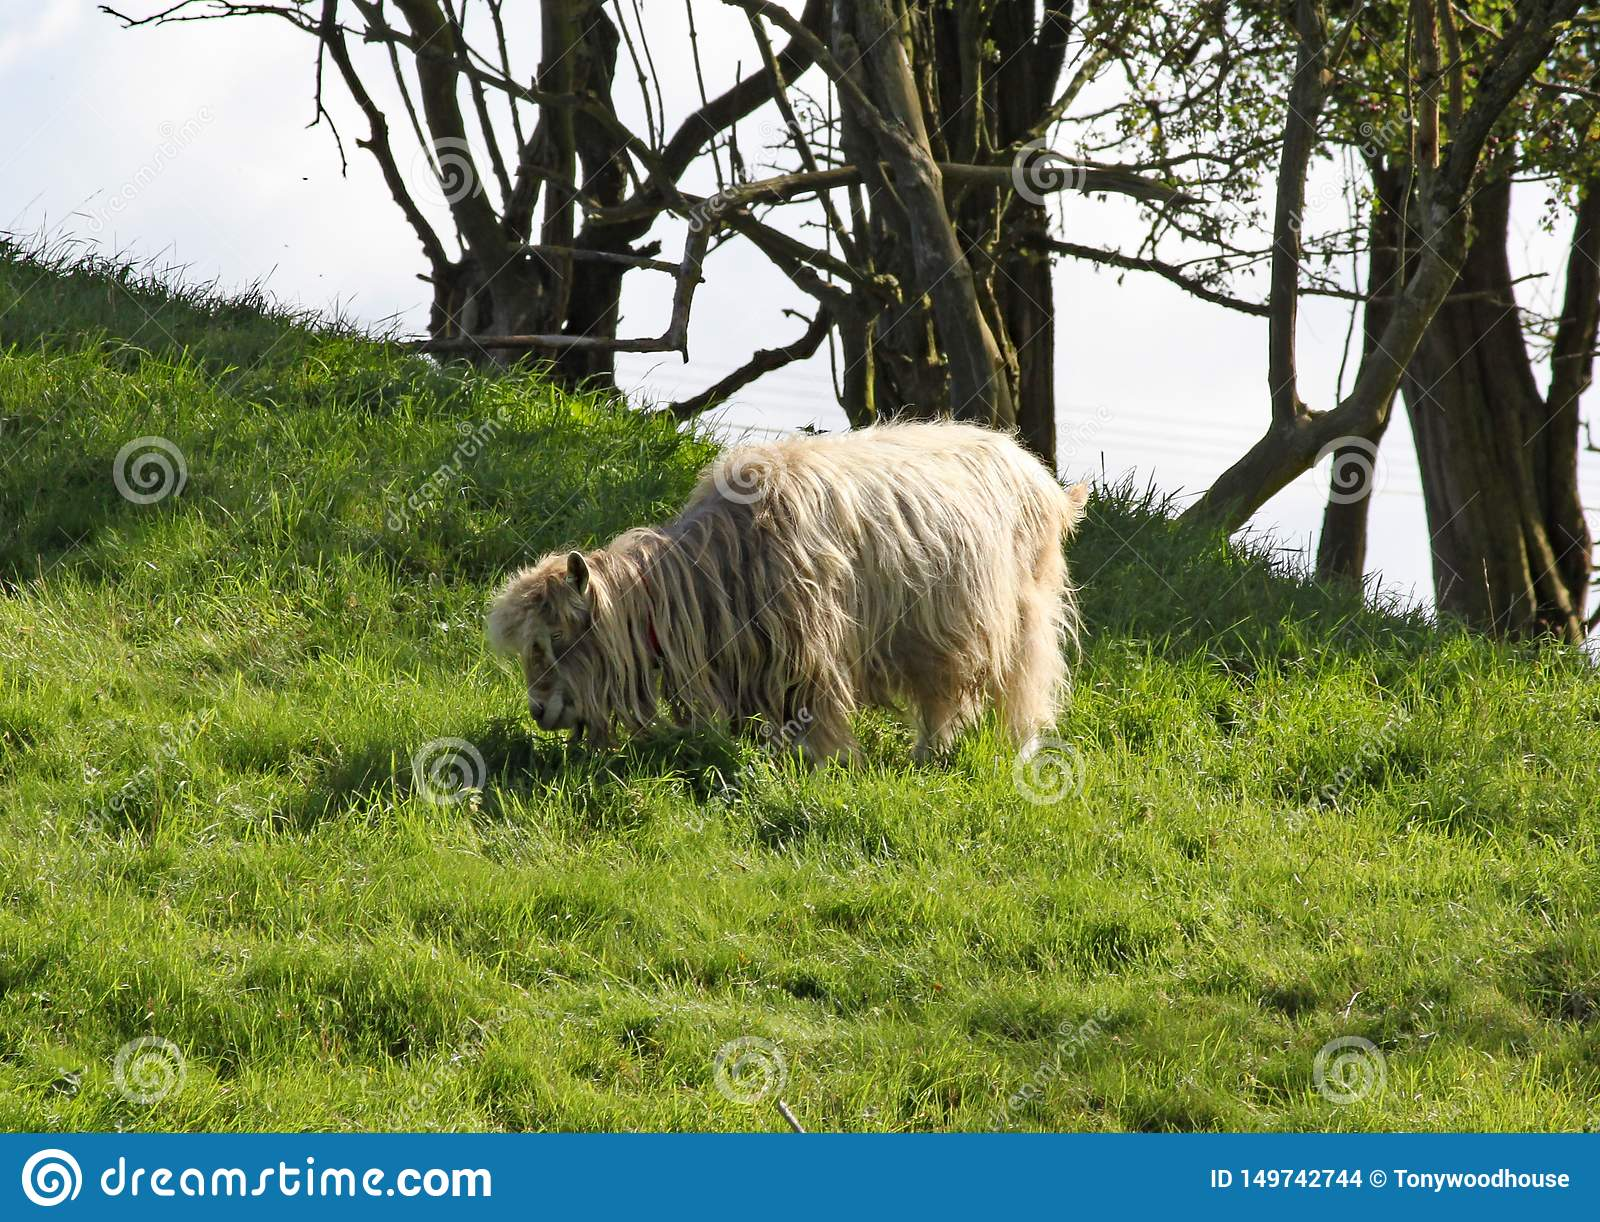 A long haired sheep grazes on lush green grass